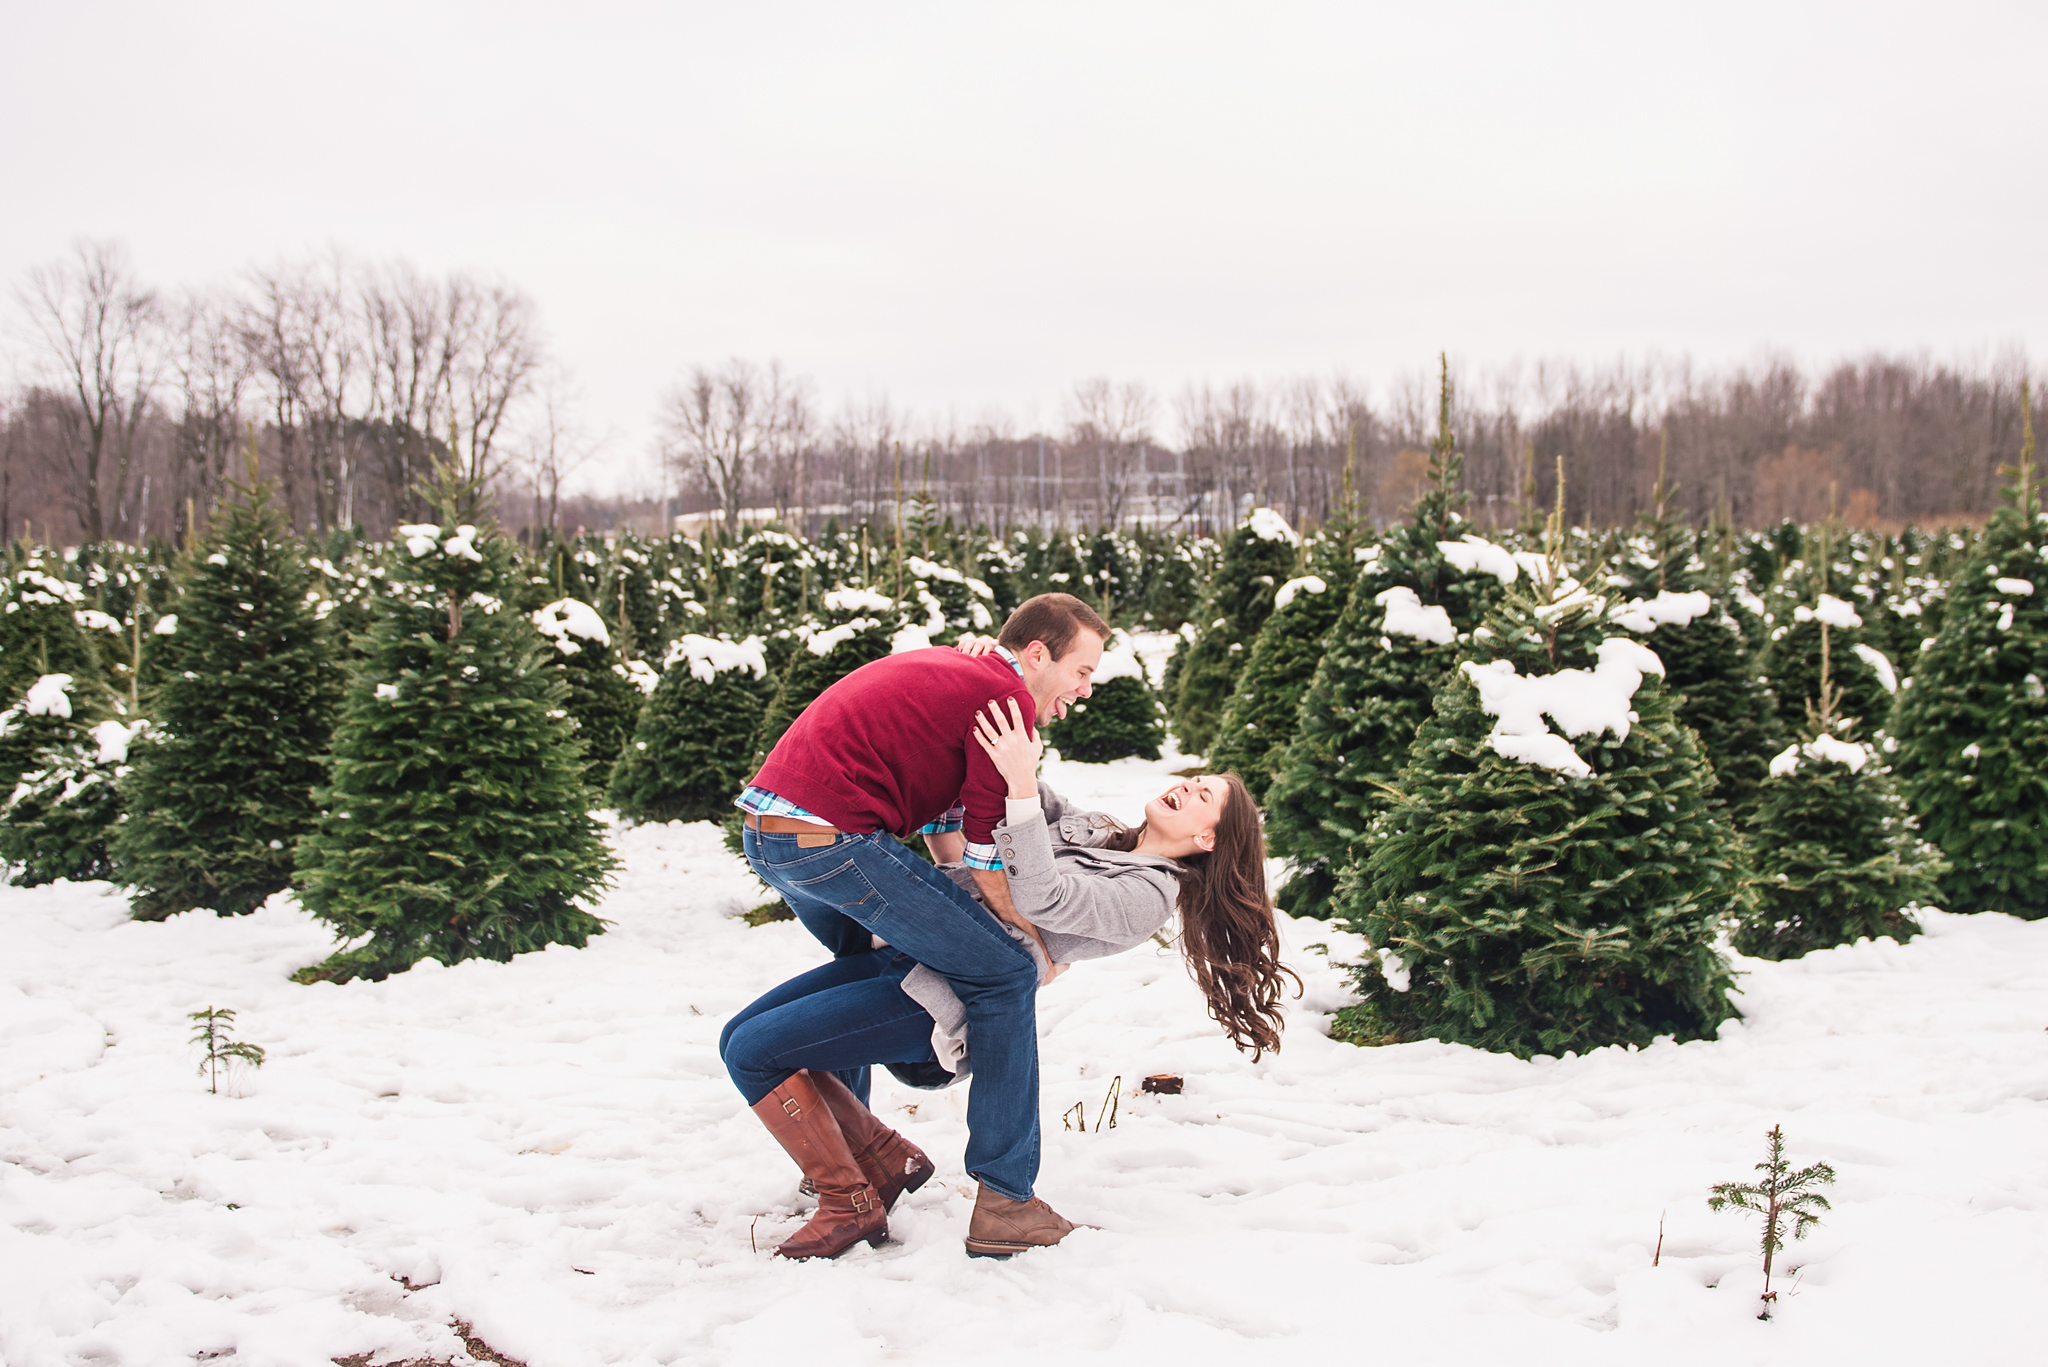 Woody_Acres_Rochester_Engagement_Session_JILL_STUDIO_Rochester_NY_Photographer_152901.jpg